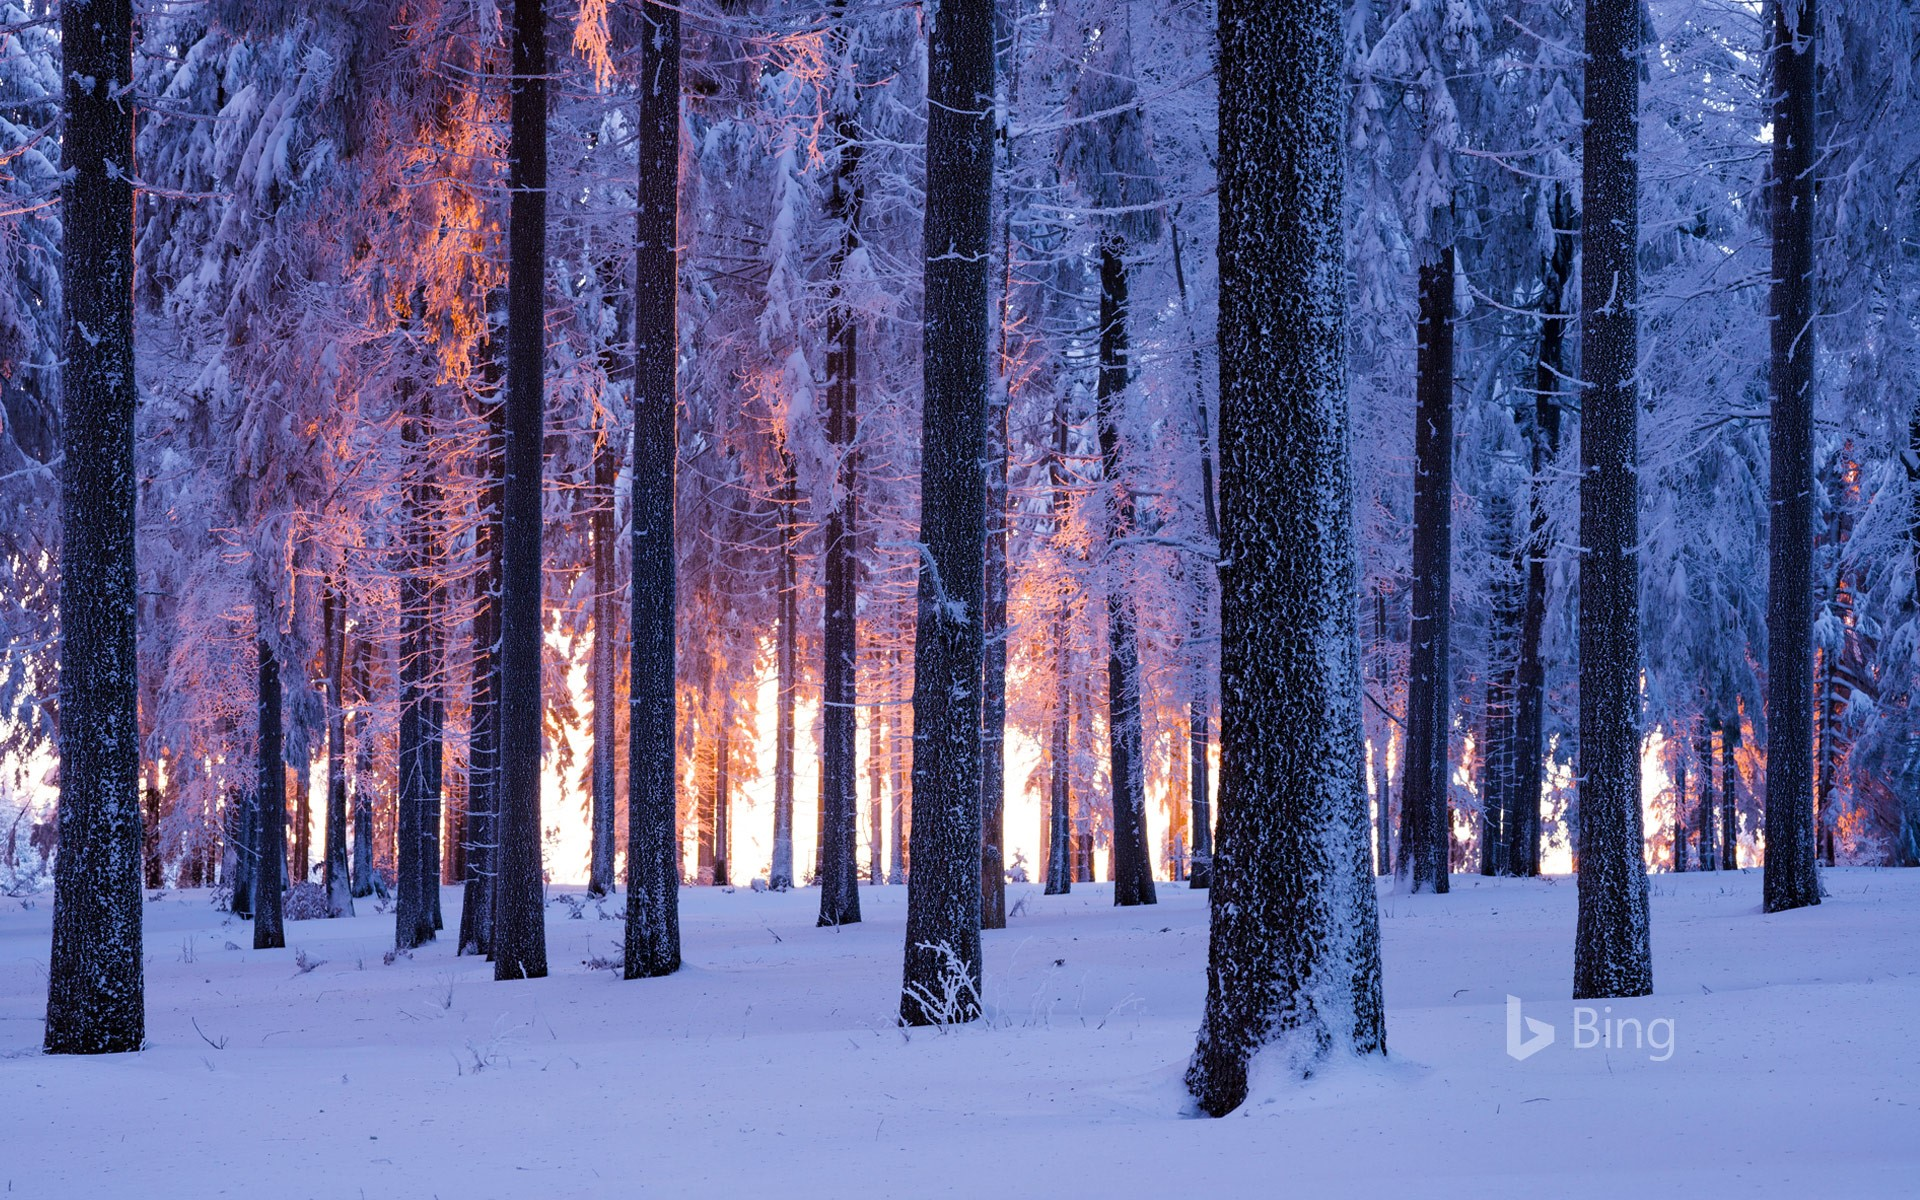 Snowy Norway spruce forest at sunset, Thuringia, Germany